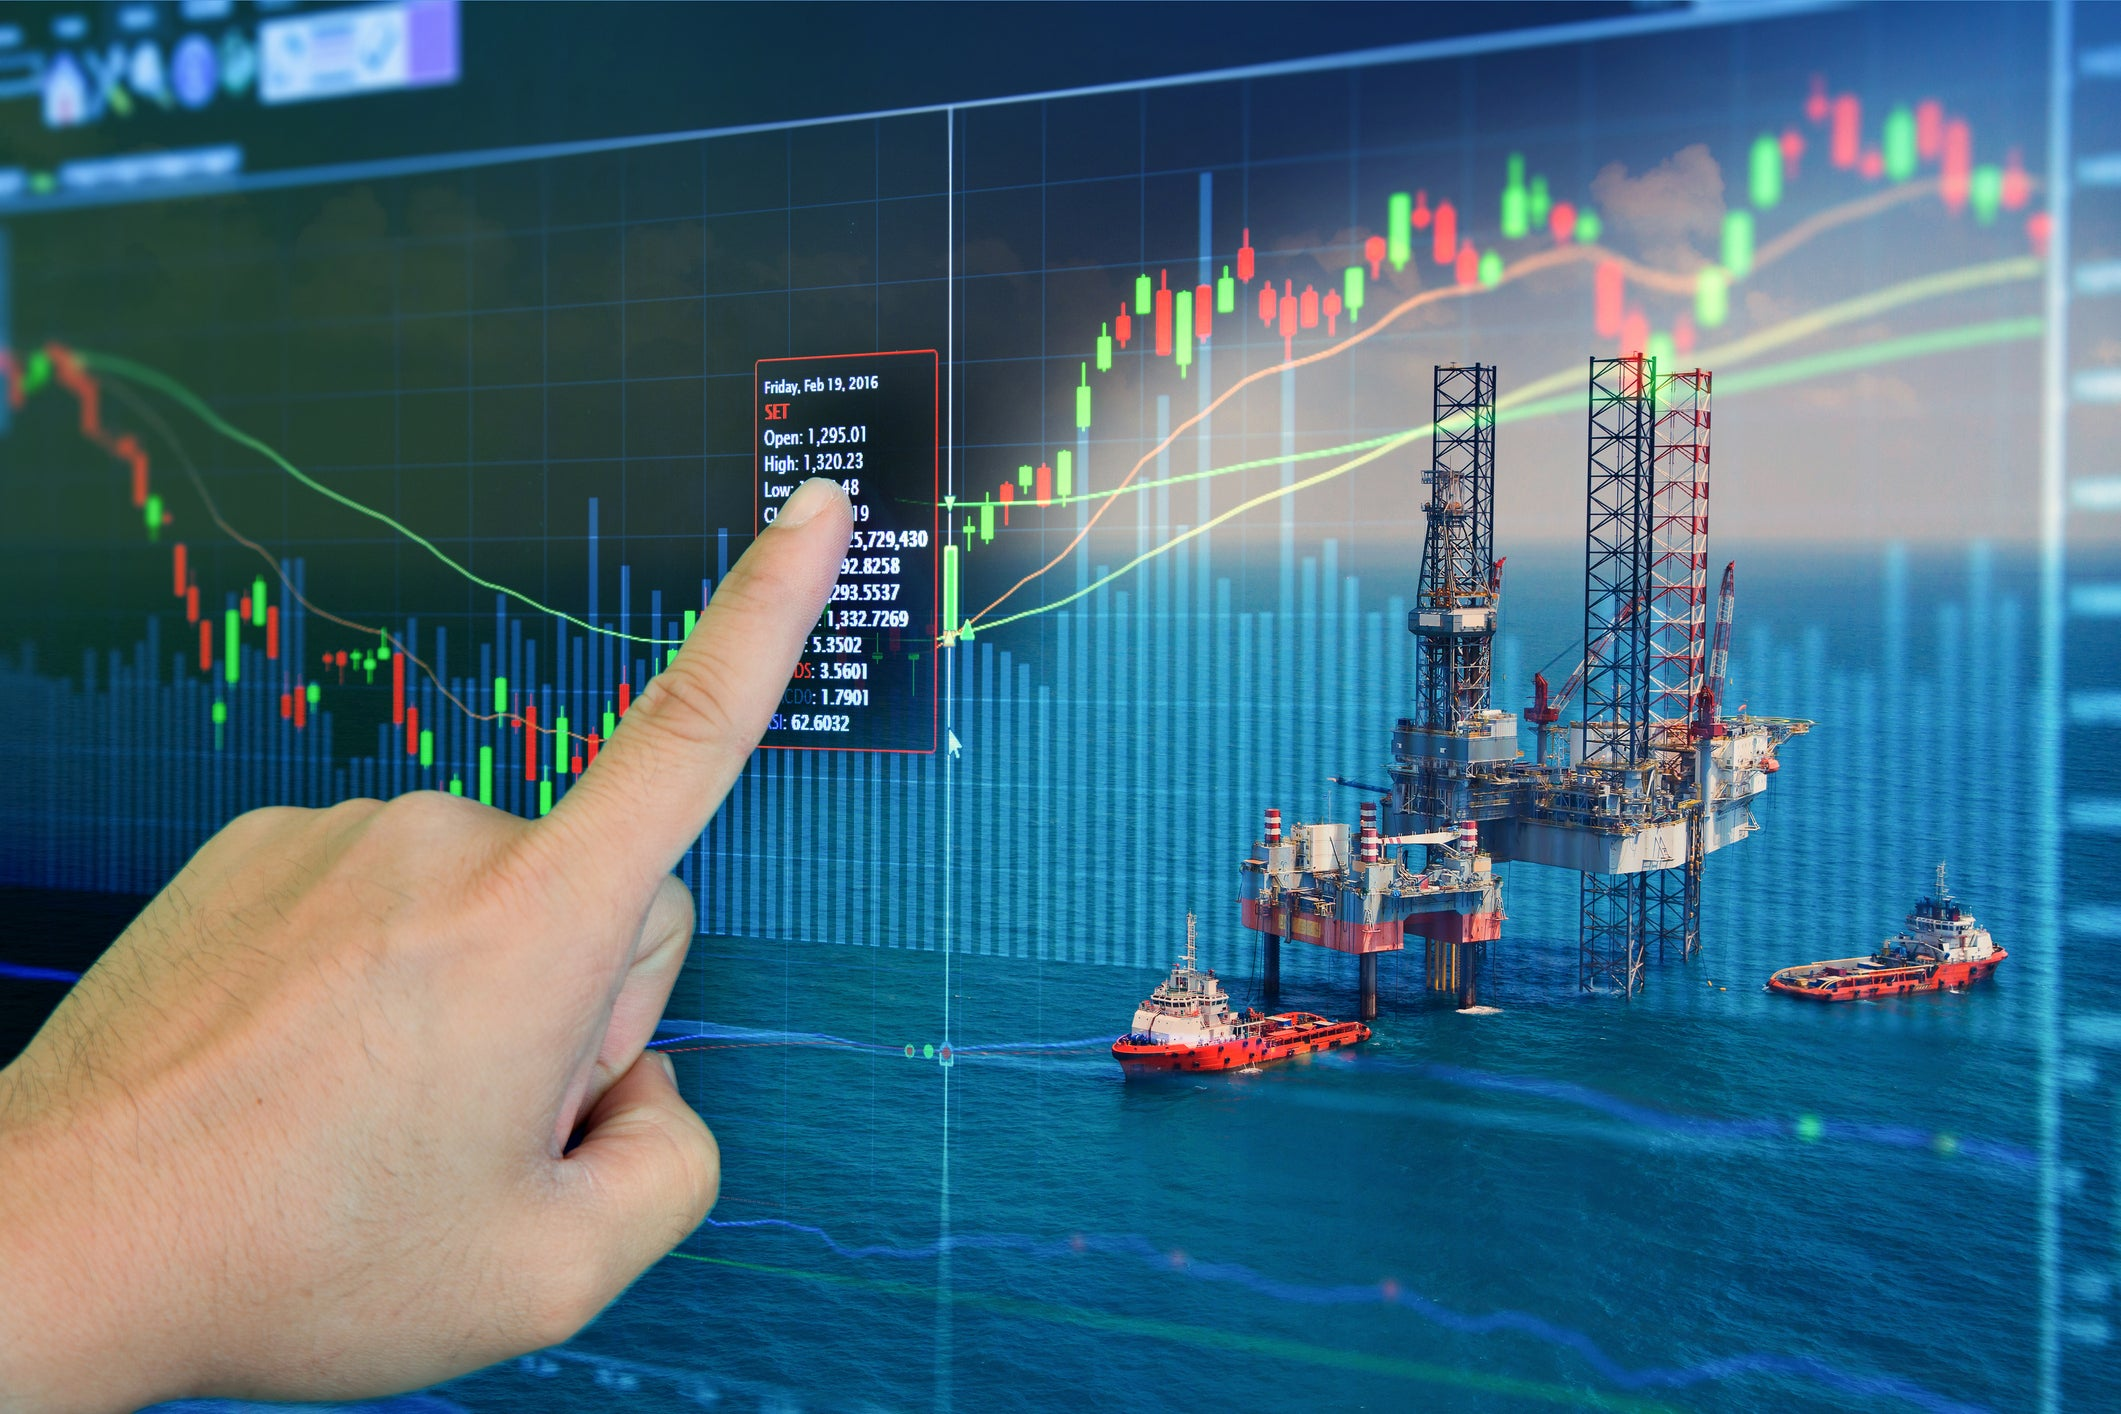 3 Top Energy Stocks to Buy in March